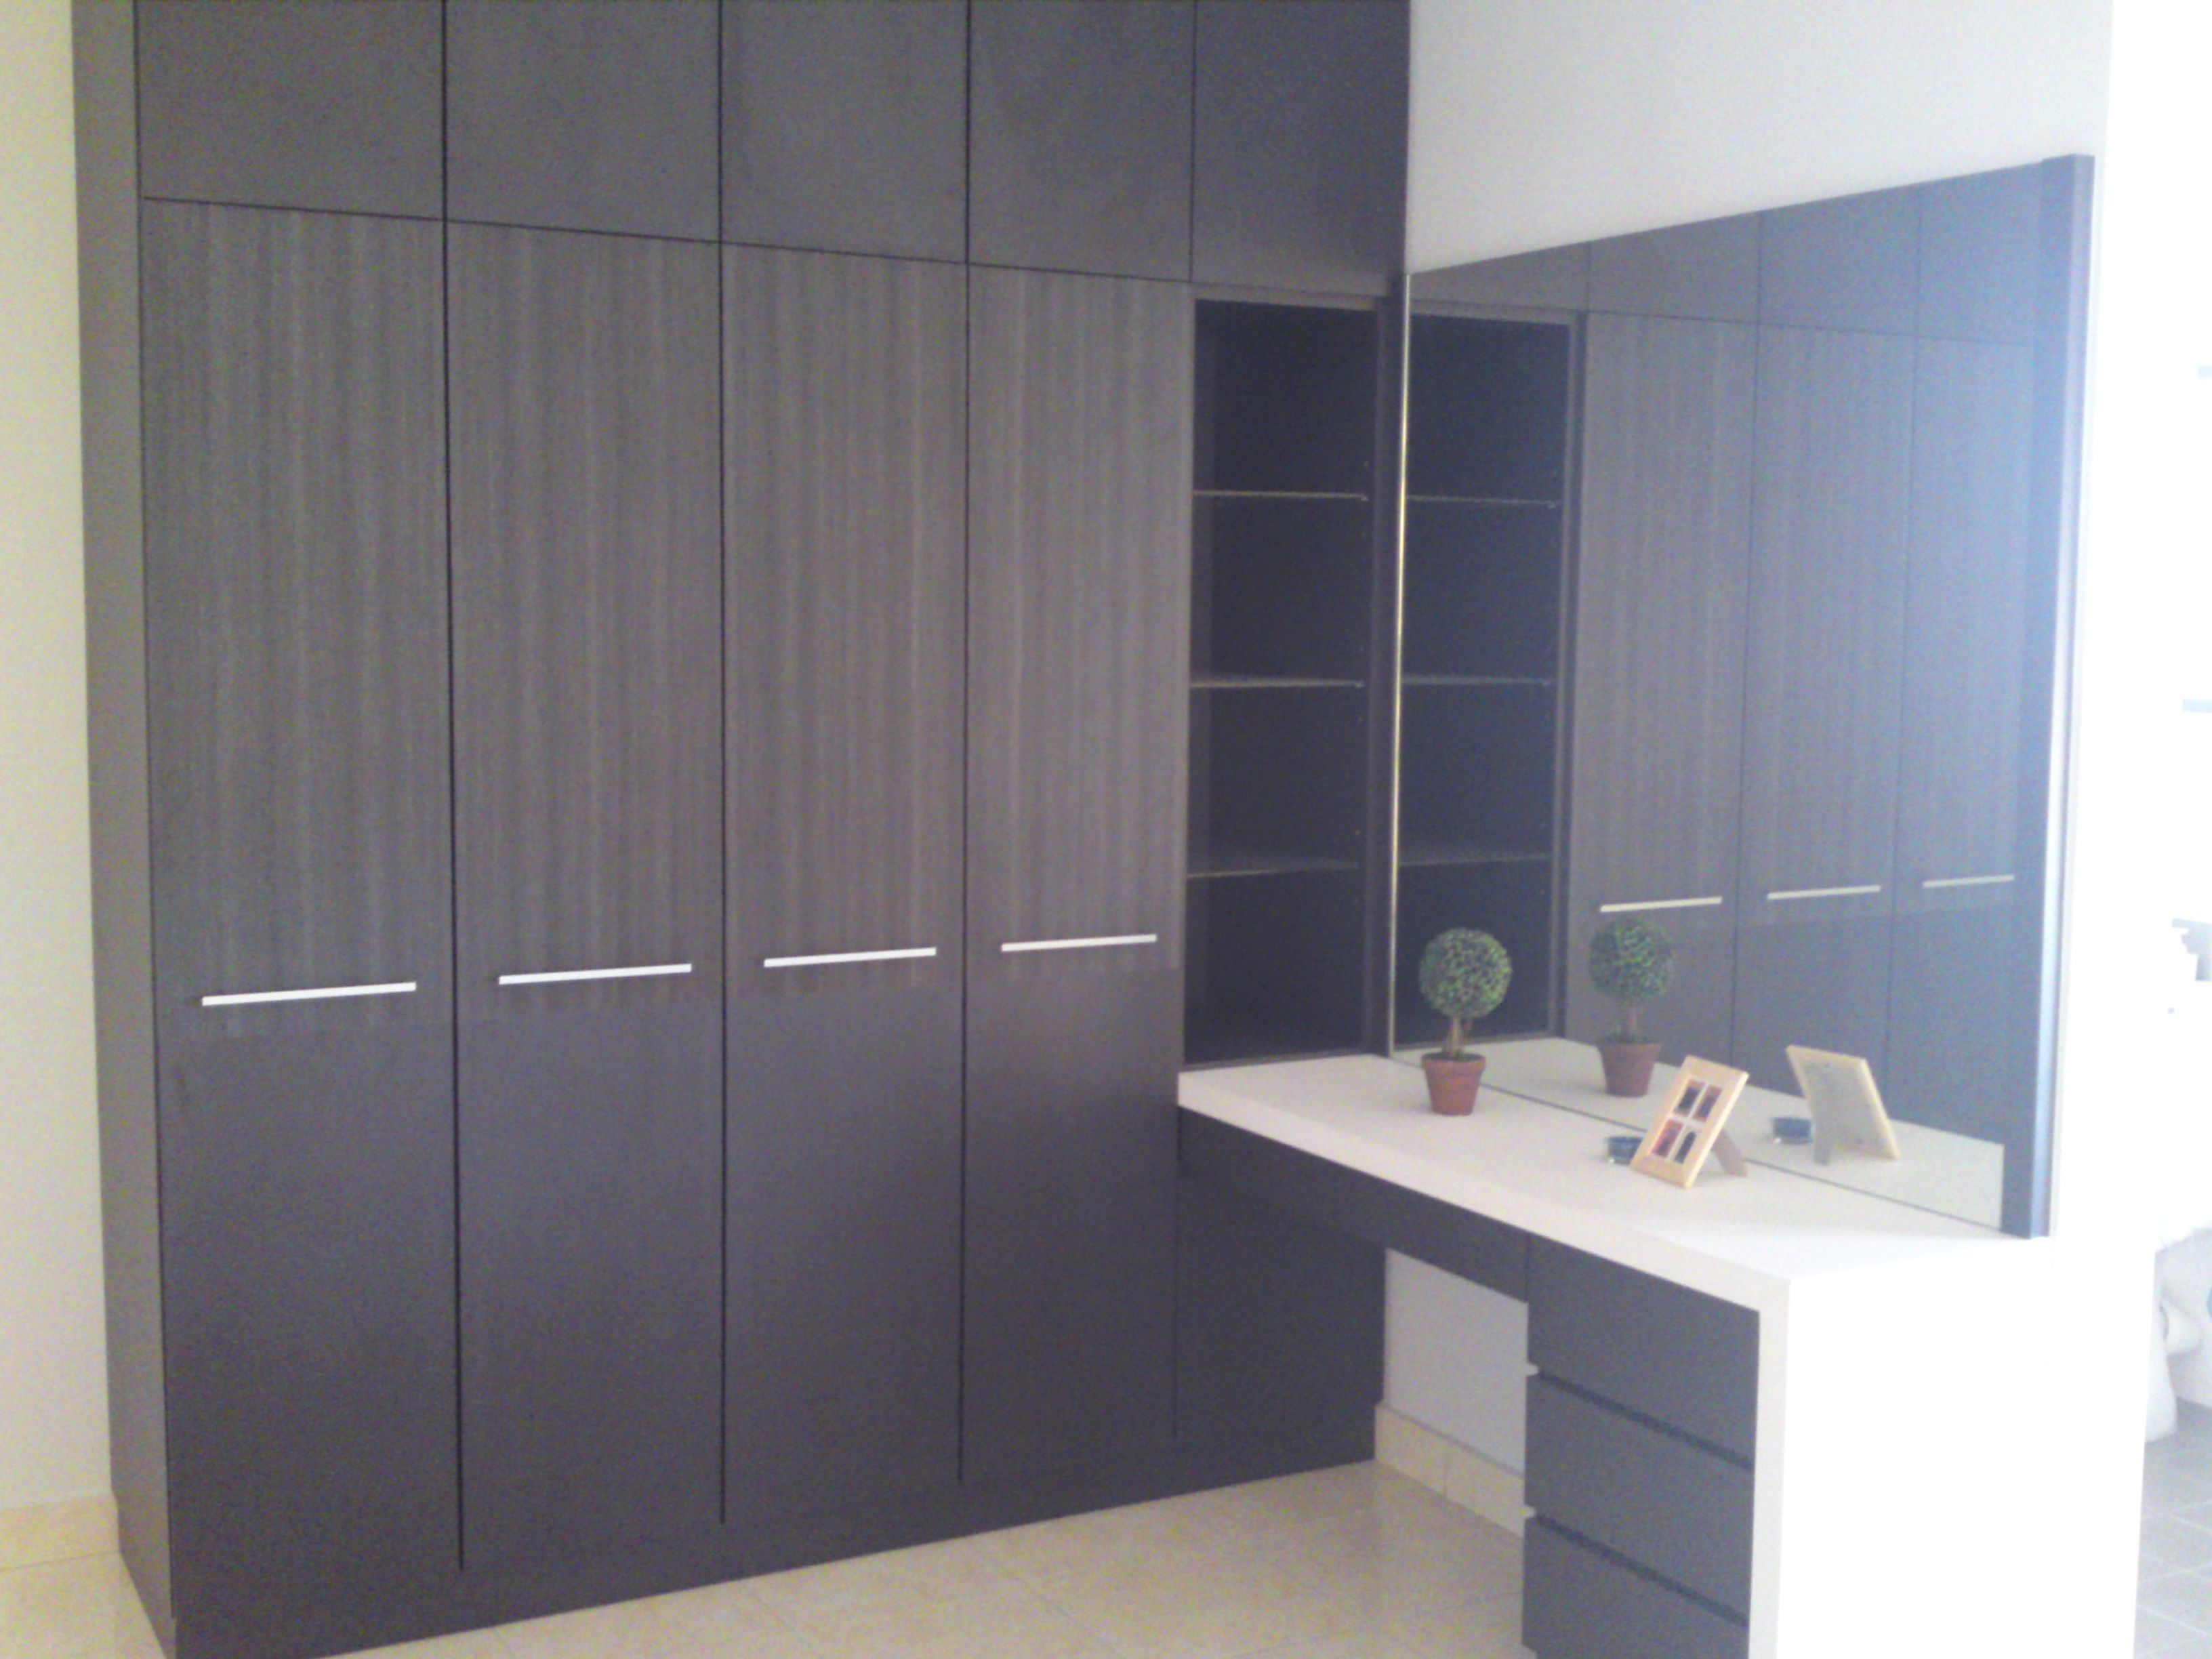 dressers bedroom and modern news p units dresser interiors perfect city closets tri on closet inc room wardrobe